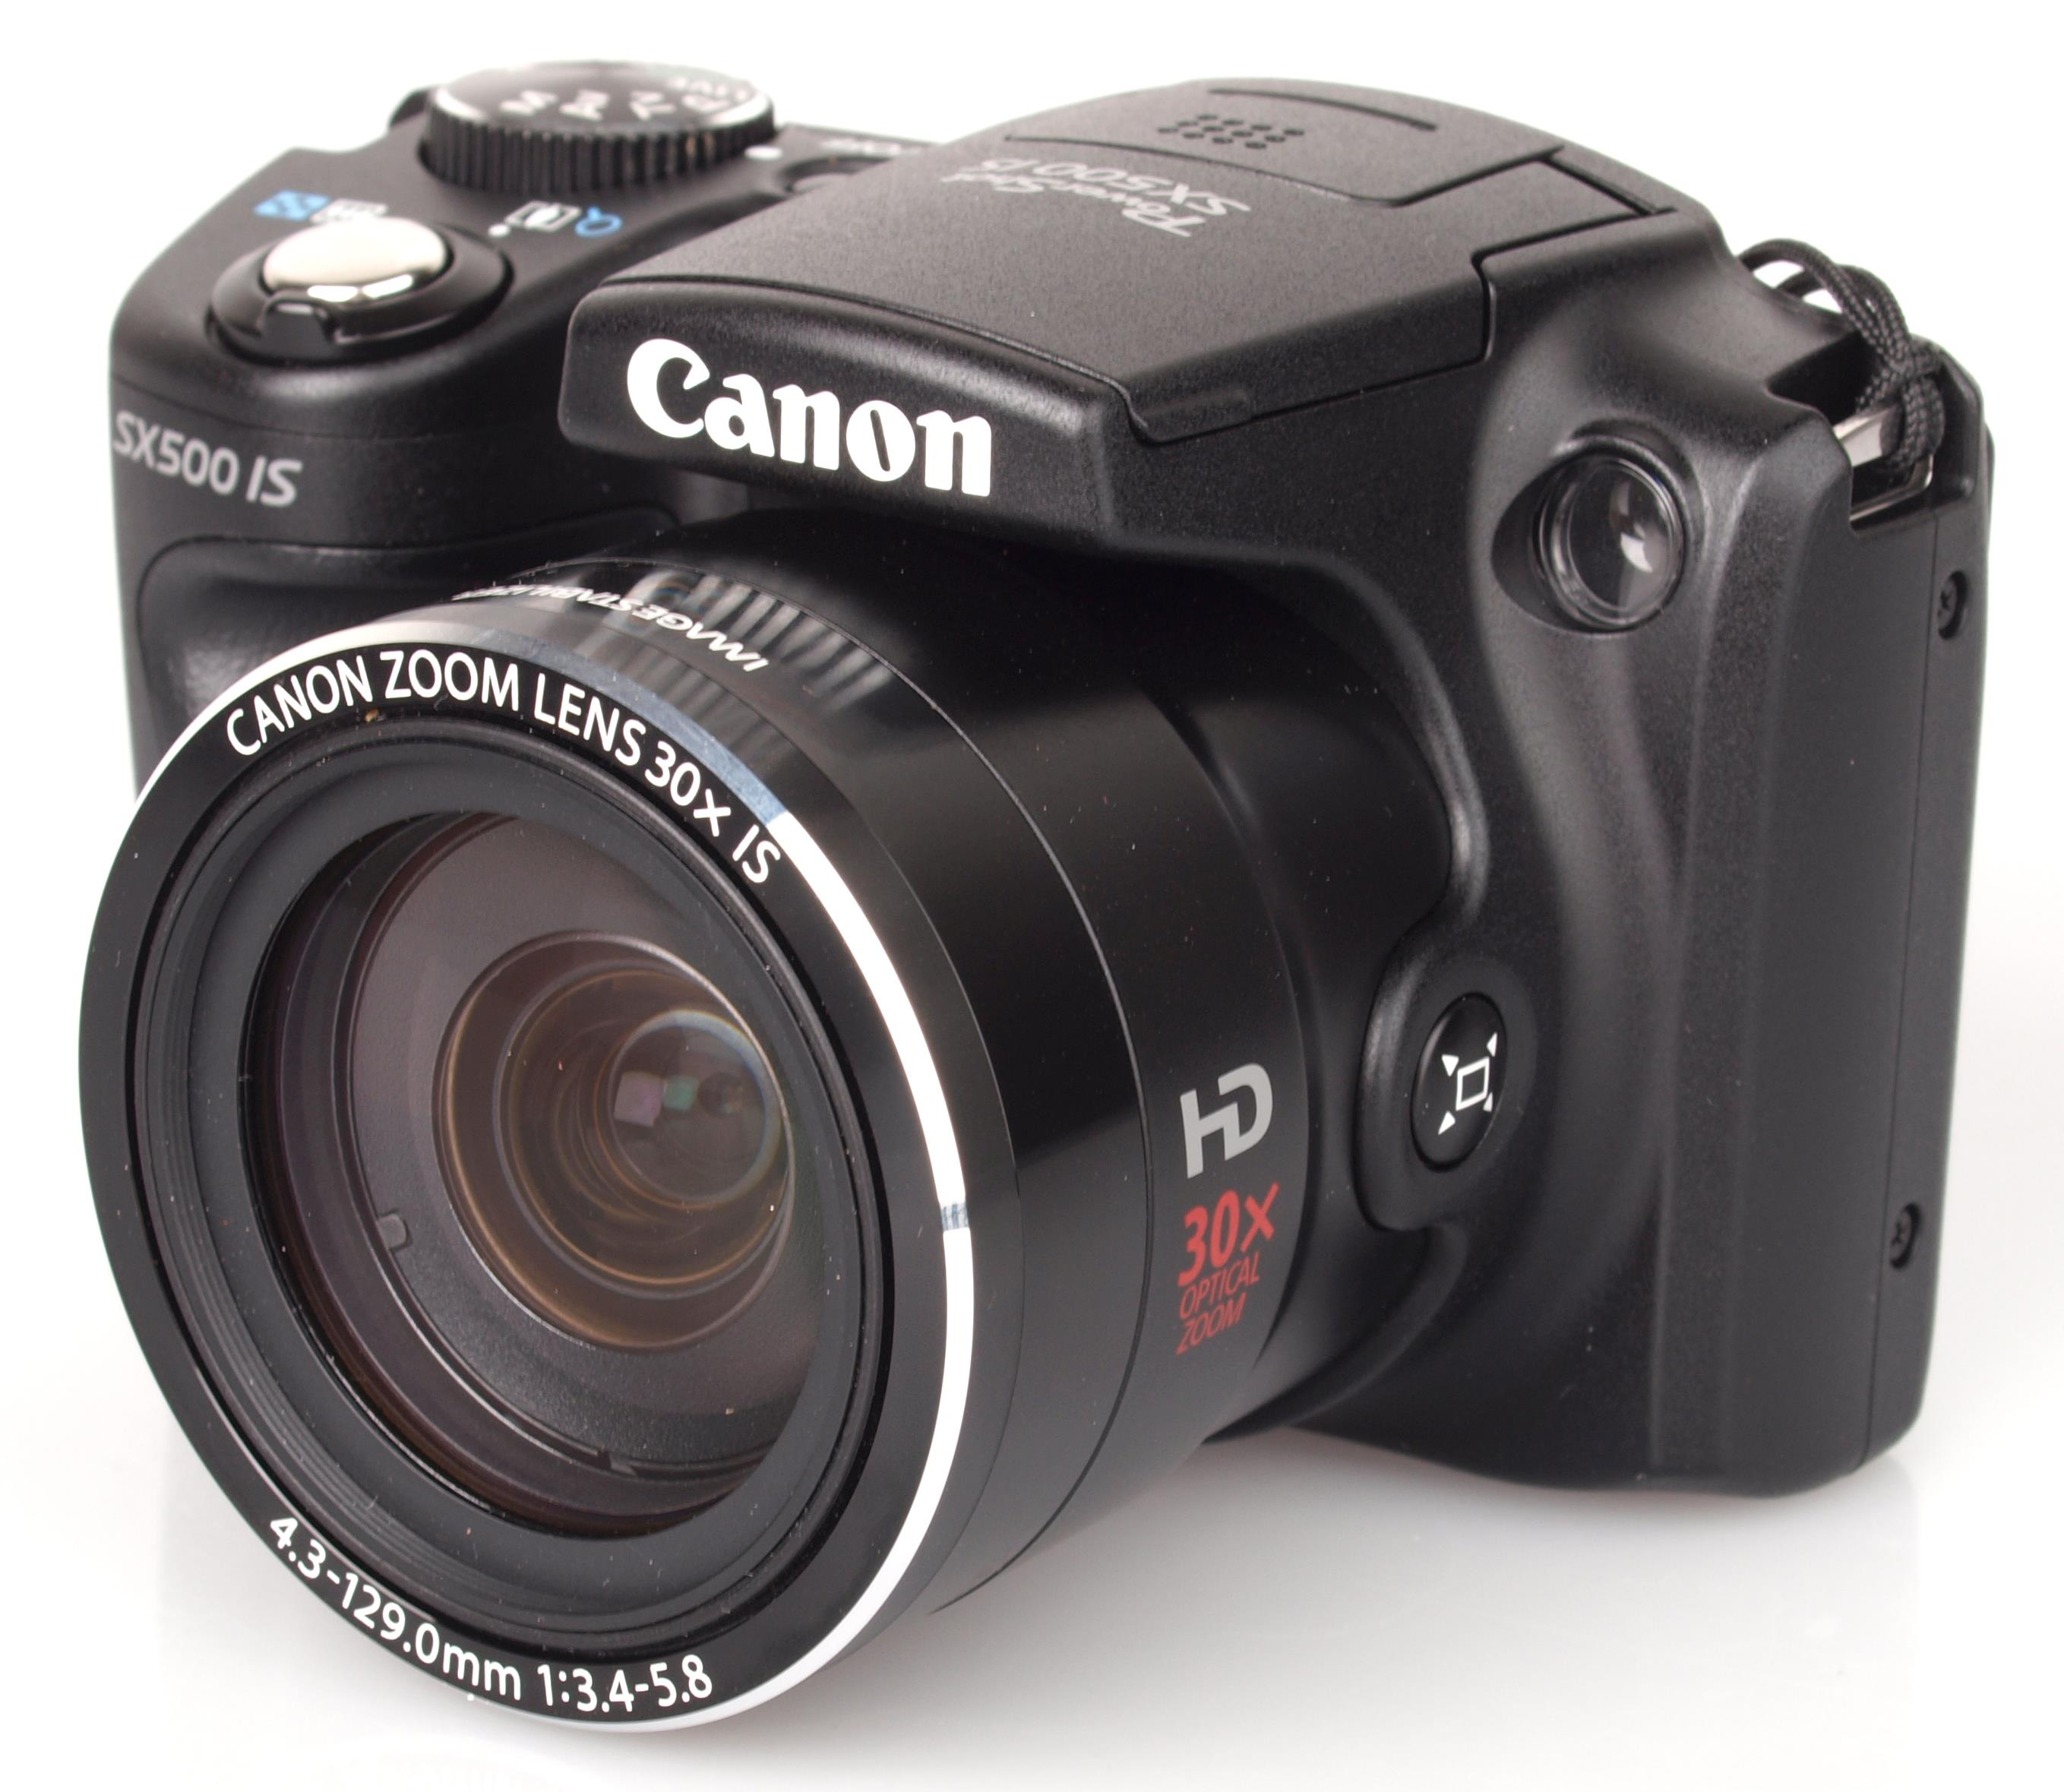 CANON POWERSHOT SX500 Review, Price, Model, Picture, Quality